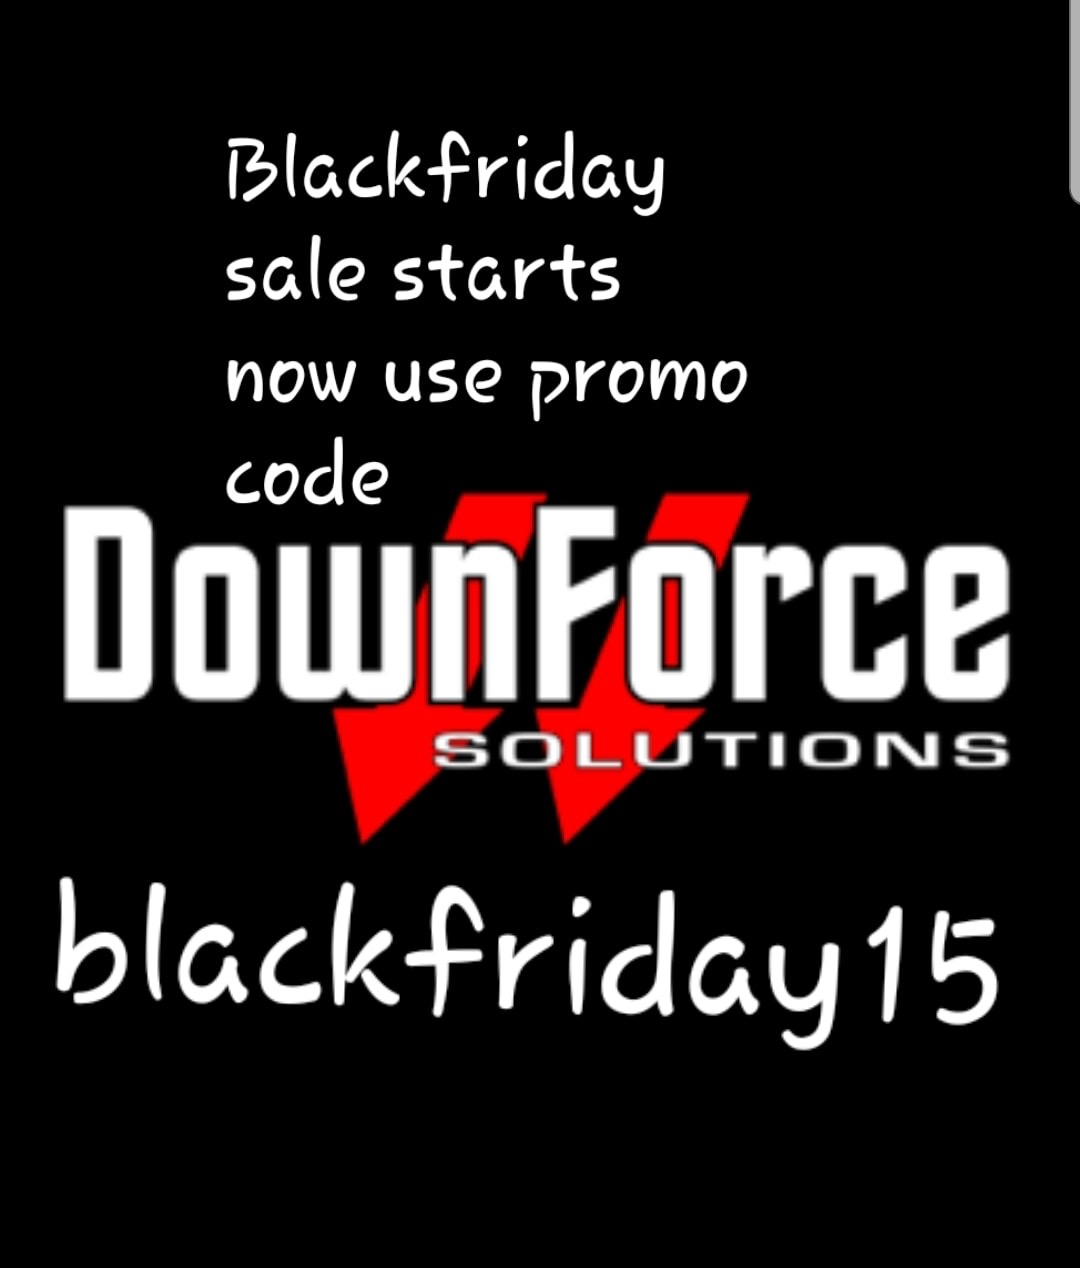 Black Friday Sales Event!! Blackfriday15